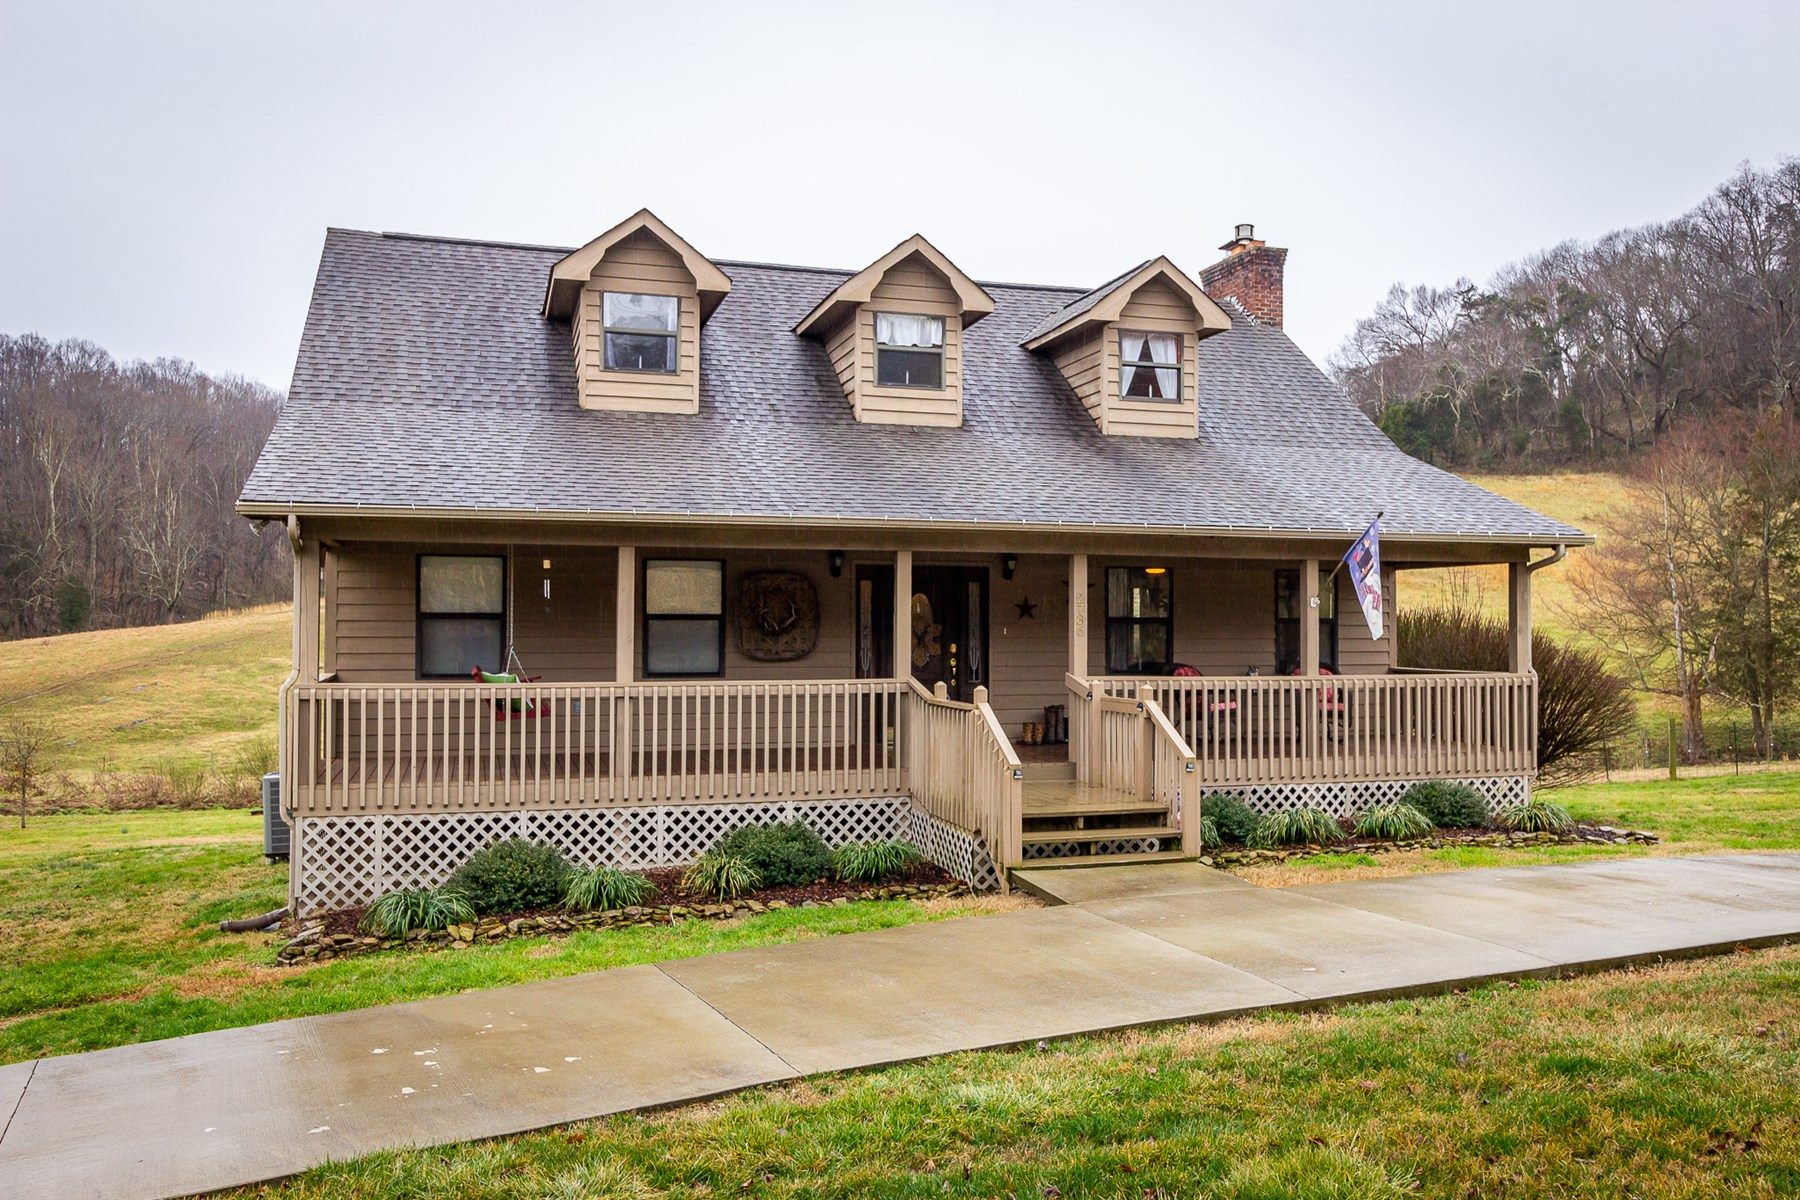 East Tennessee Country Home and Acreage for Sale Hamblen Co